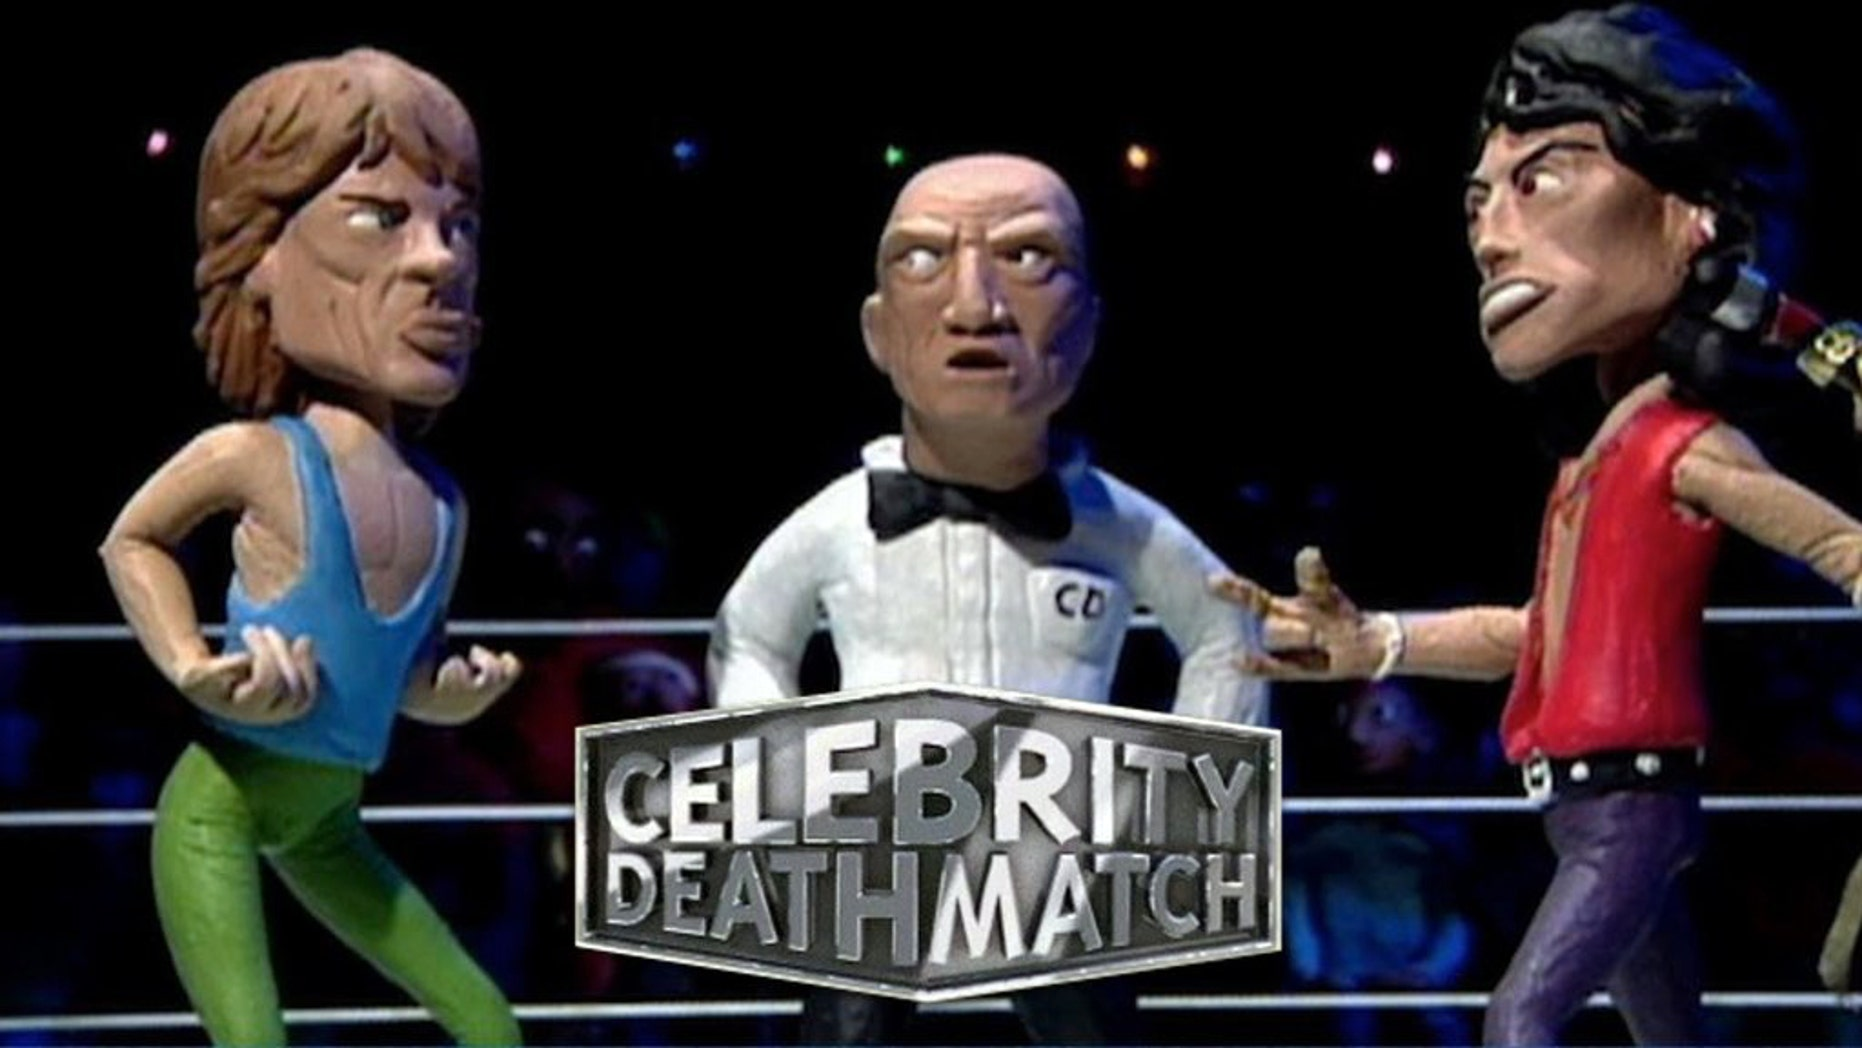 Amazon.com: Celebrity Death Match - PlayStation 2: Artist ...